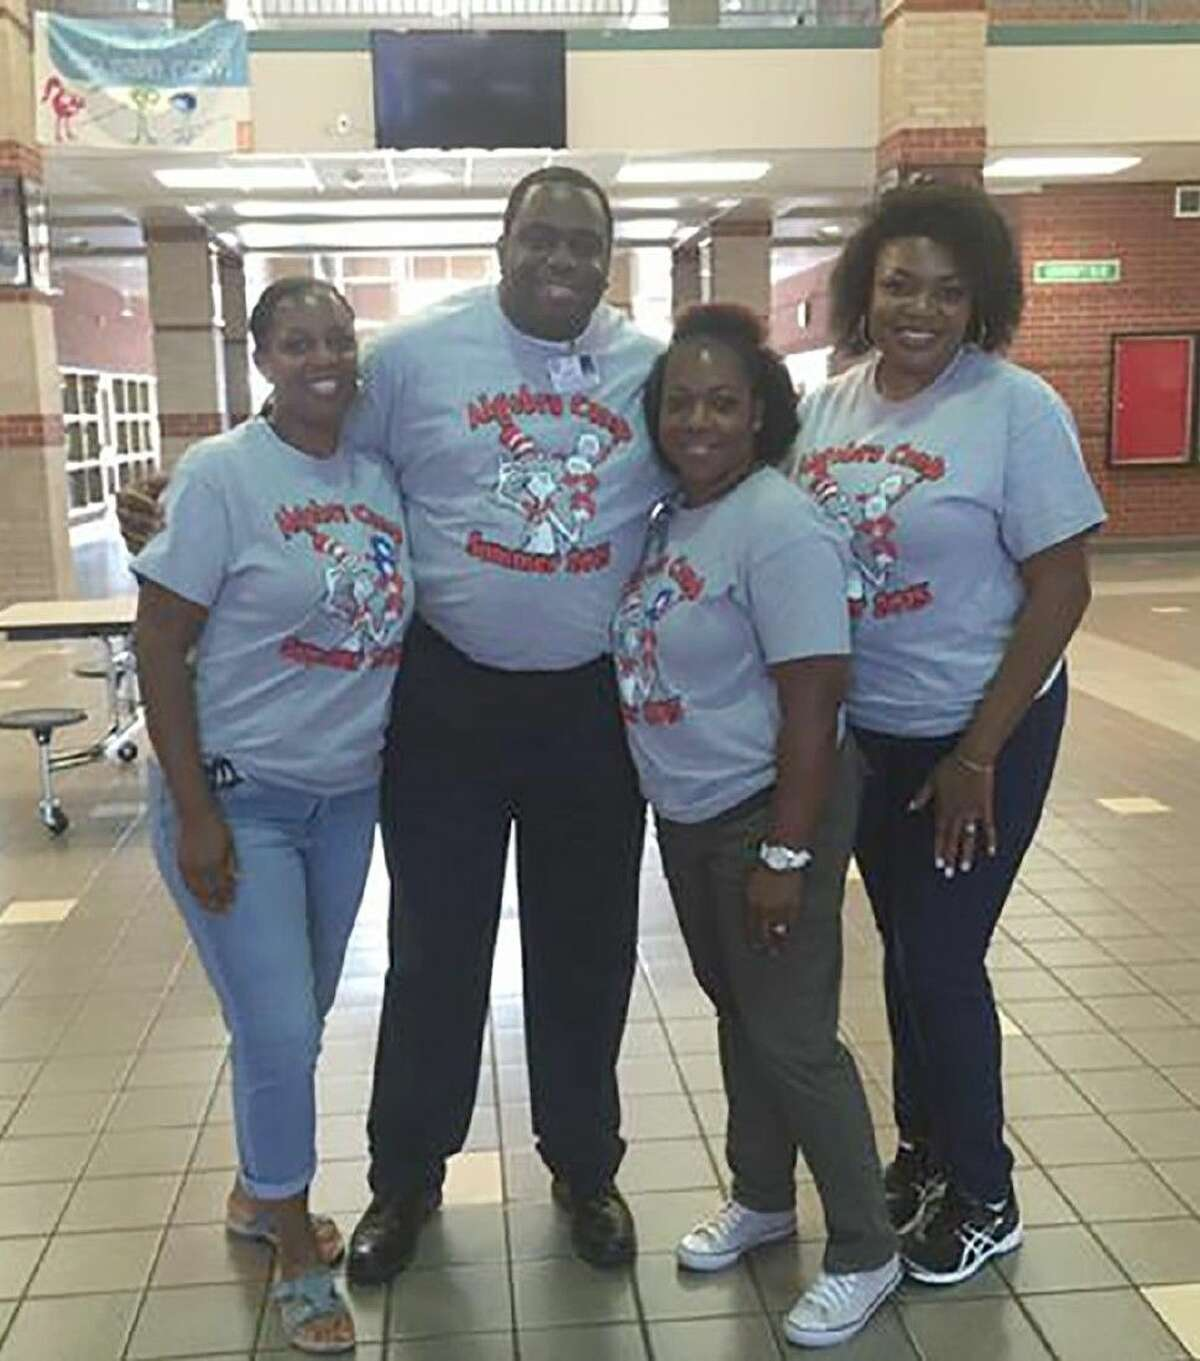 From left, Cypress Springs counselor Wanda Brown, assistant superintendent of secondary administration Travis Fanning, Cypress Springs assistant principal / camp director Colette Vallot and Cypress Springs counselor Anna Hill support the Algebra Camp at Cypress Springs High School.